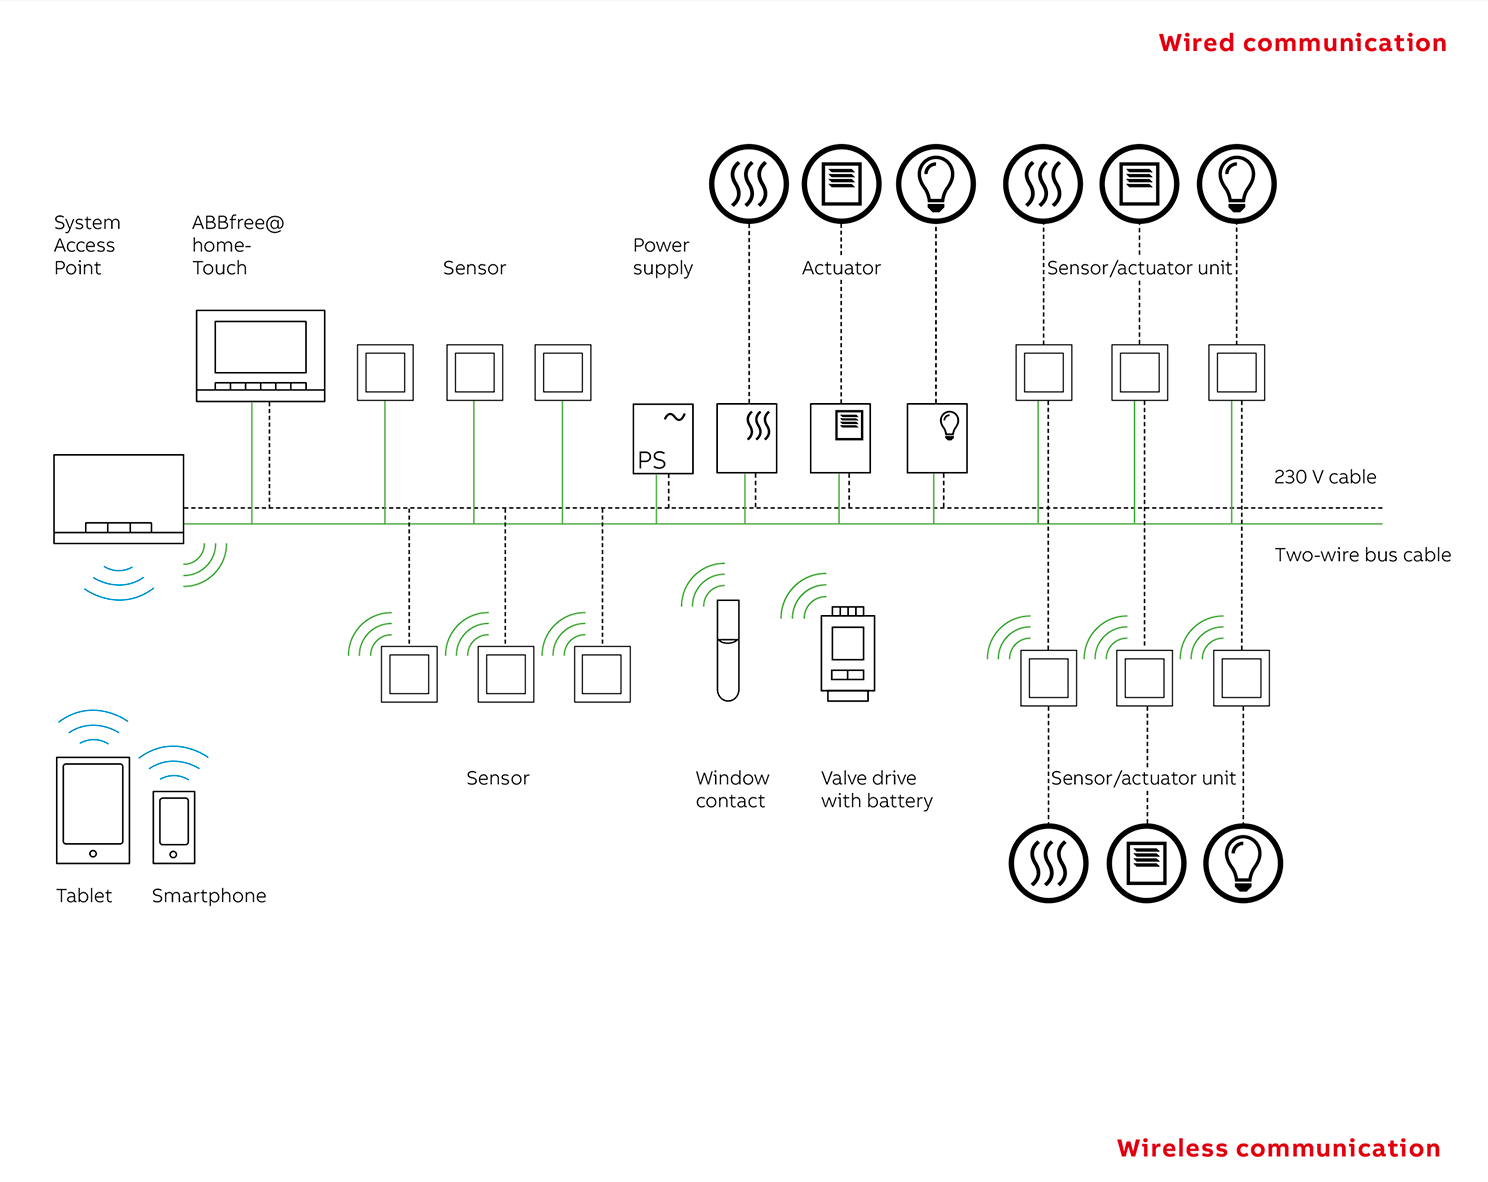 small resolution of abb switch wiring diagram wiring diagram data schema abb switch wiring diagram